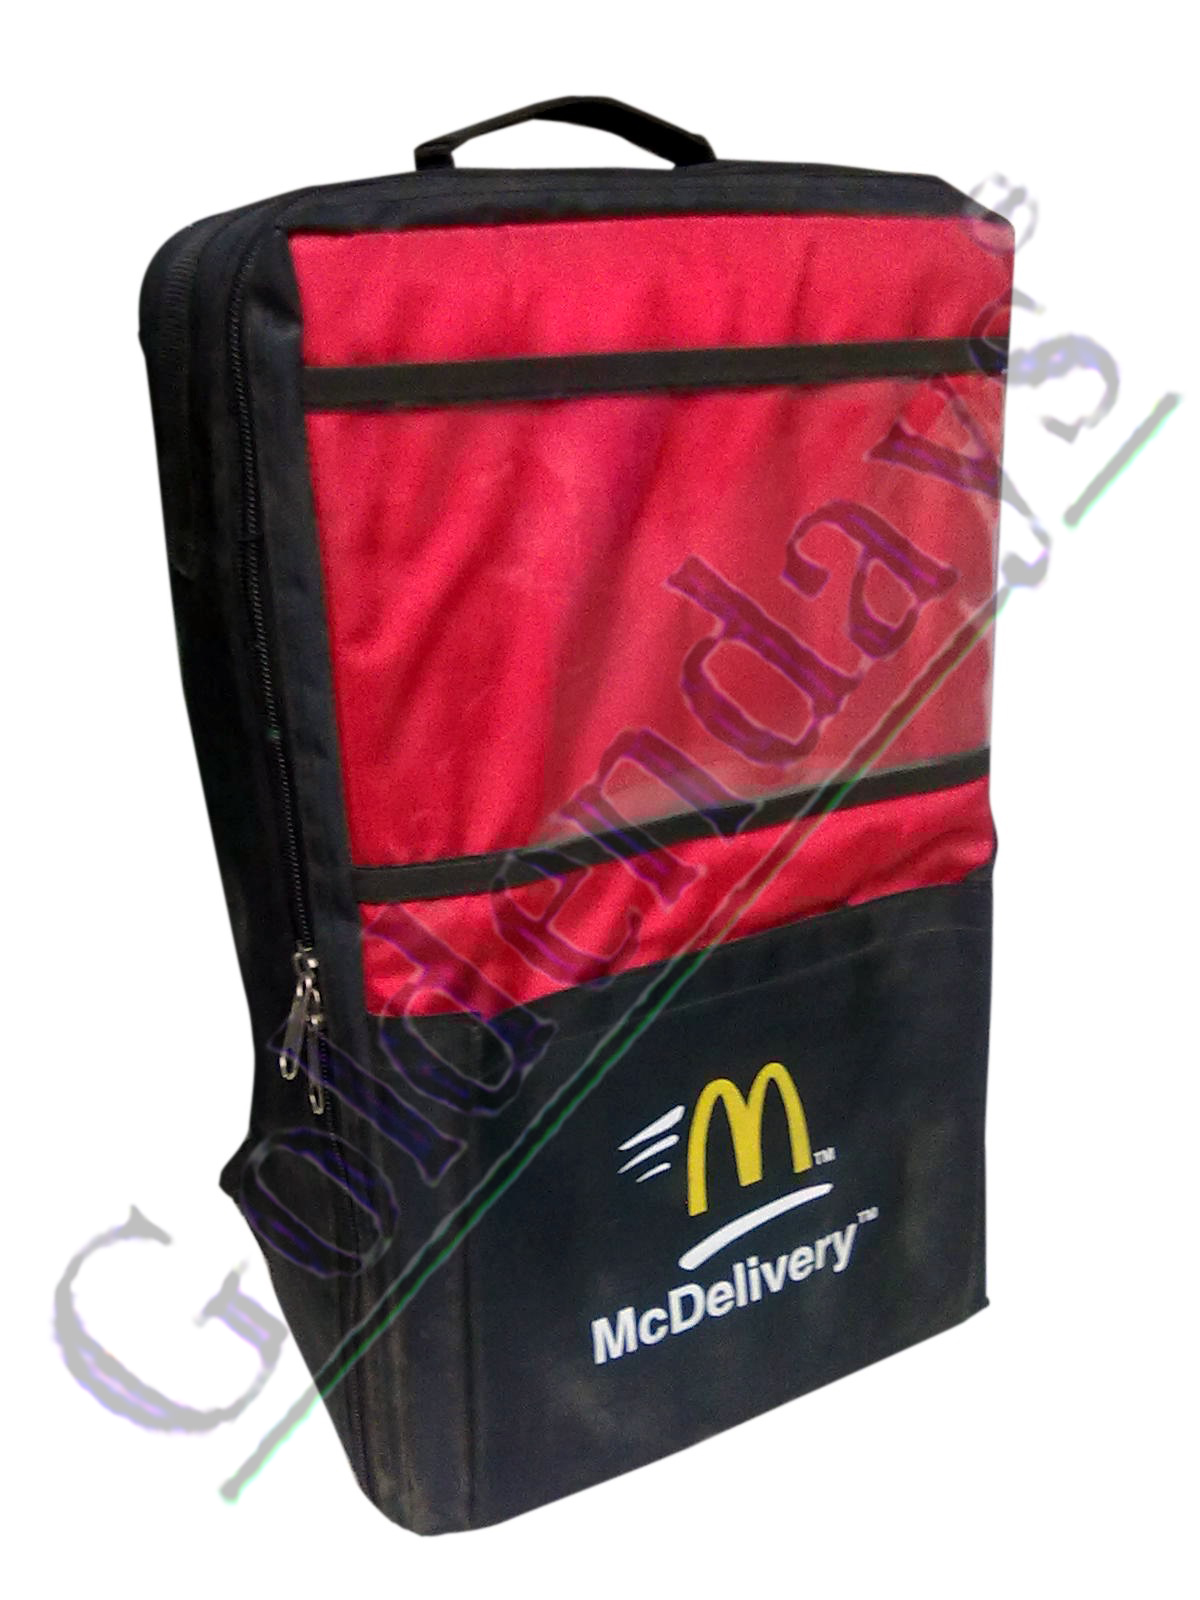 Mcd Shoulder bag